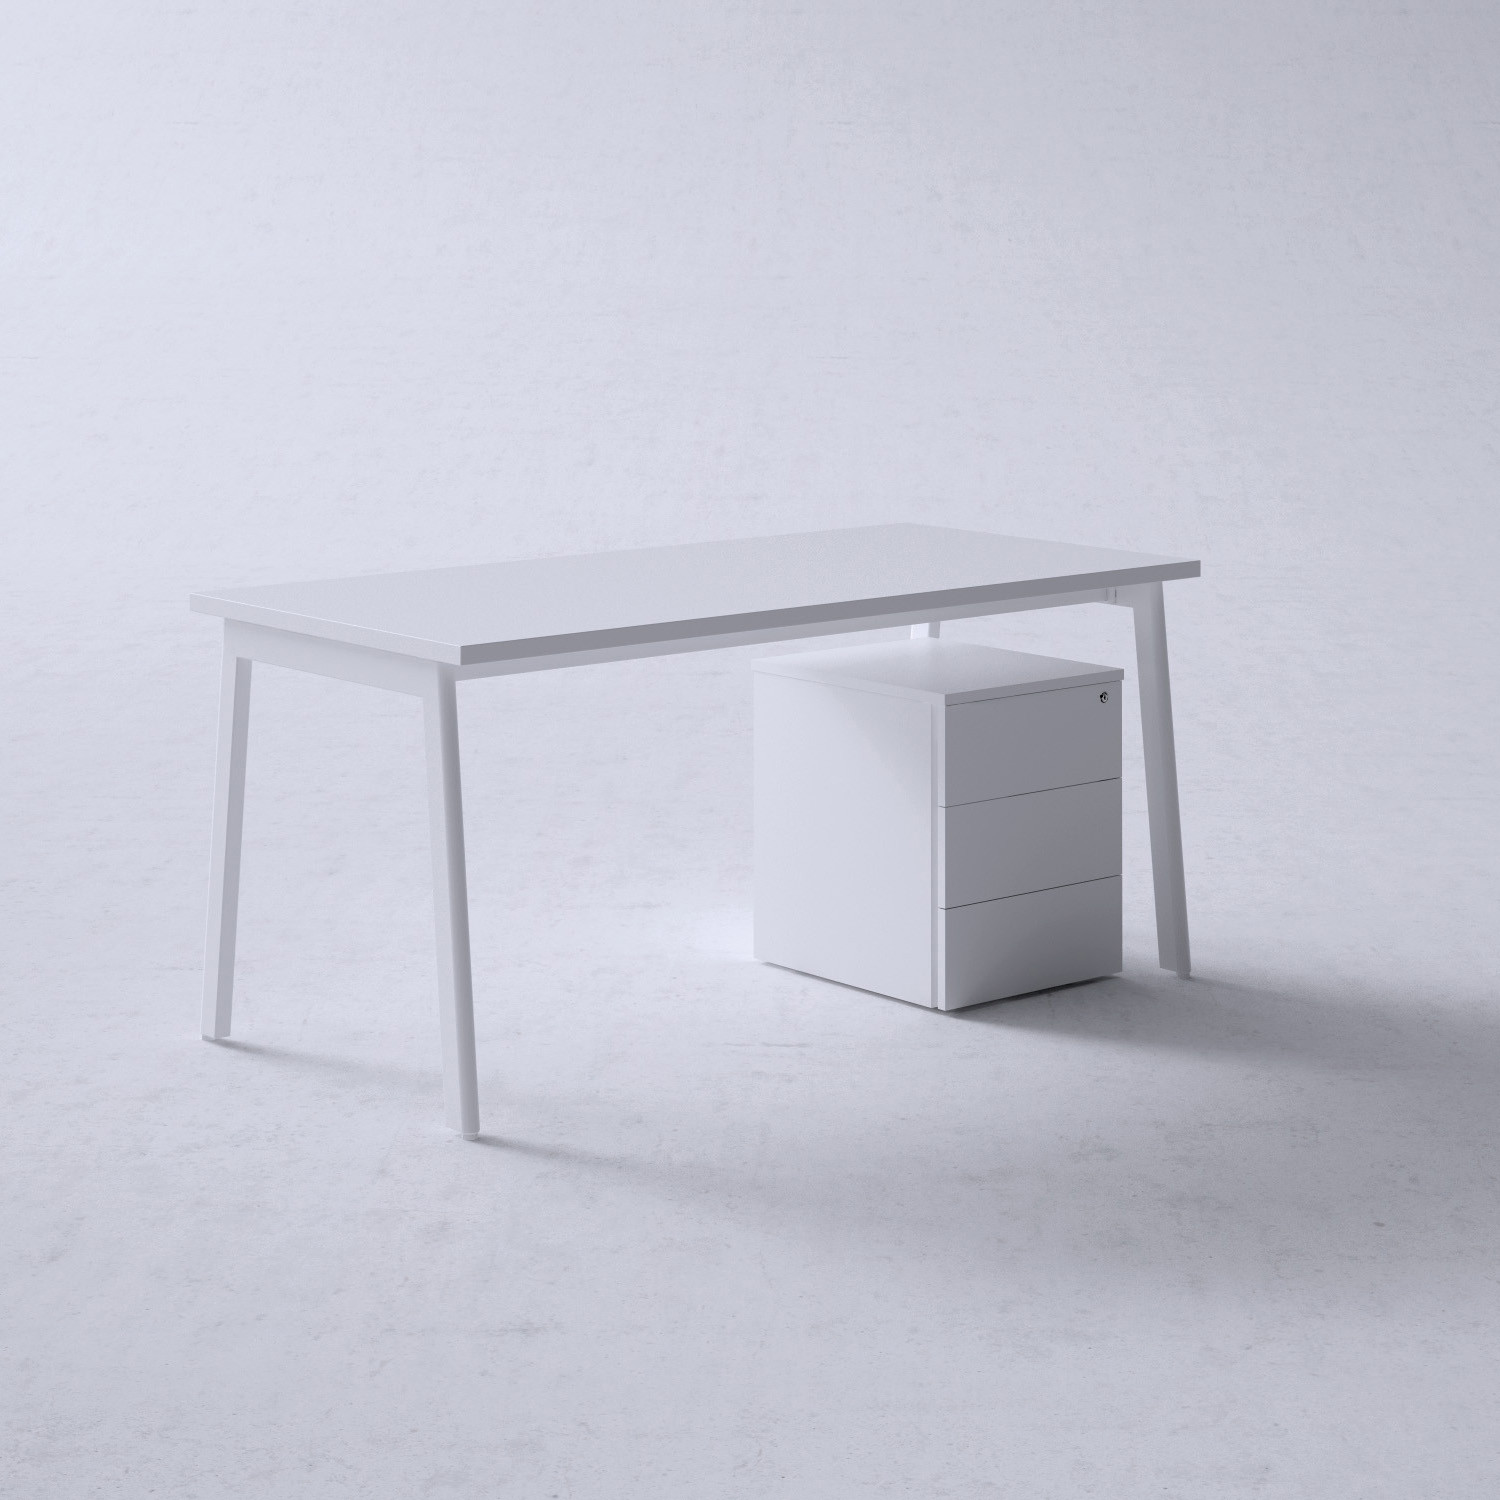 M10 Office Desks with Pedestal